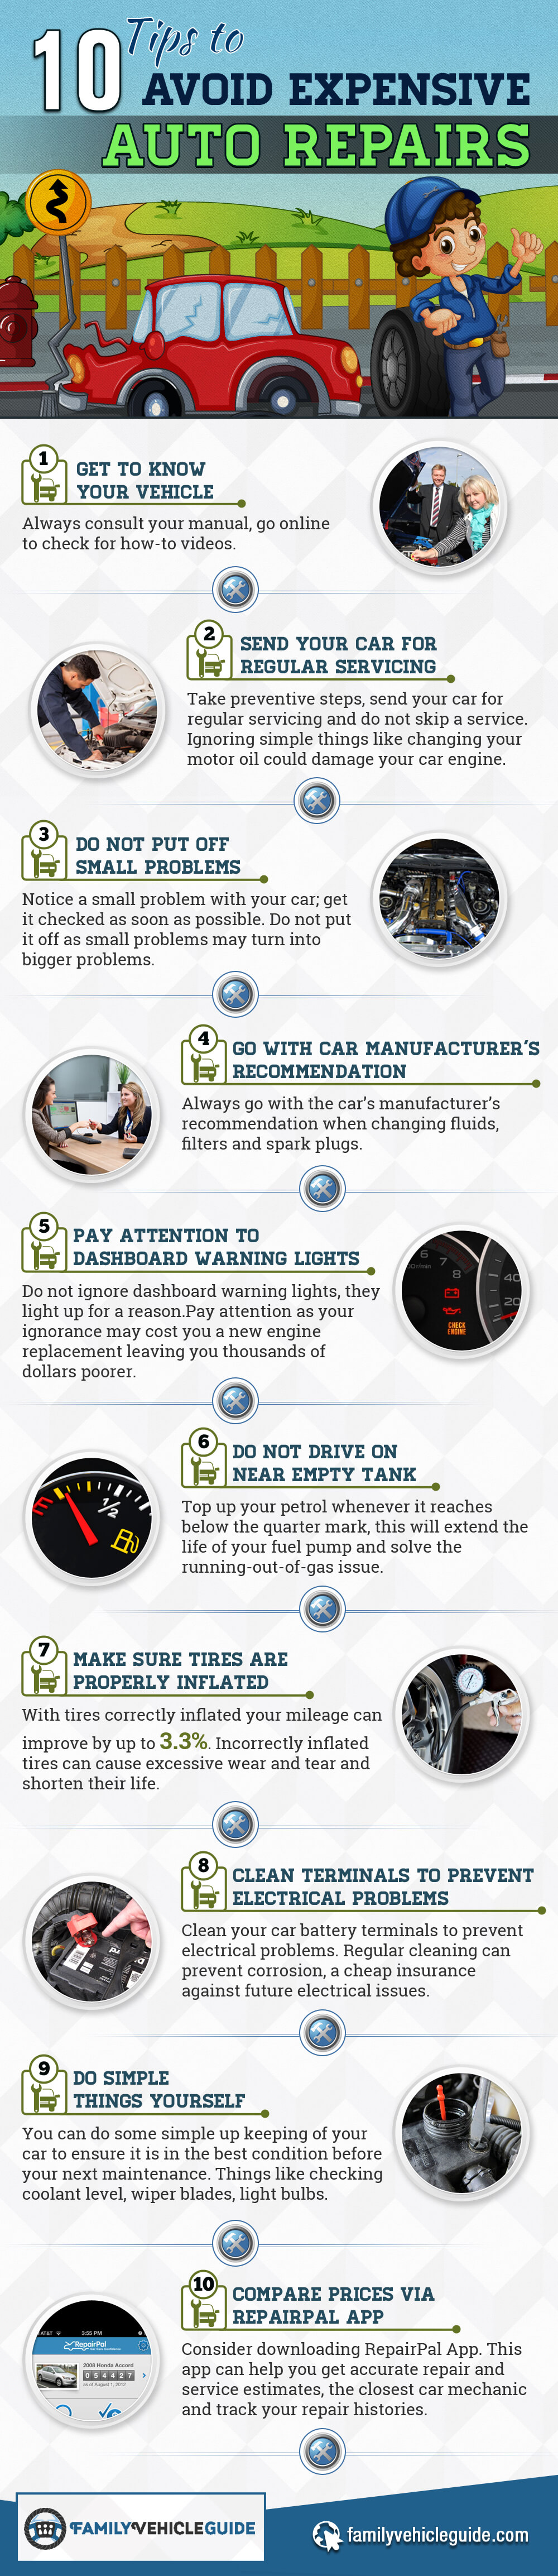 10_Tips_to_Avoid_Expensive_Auto_repairs_infographic